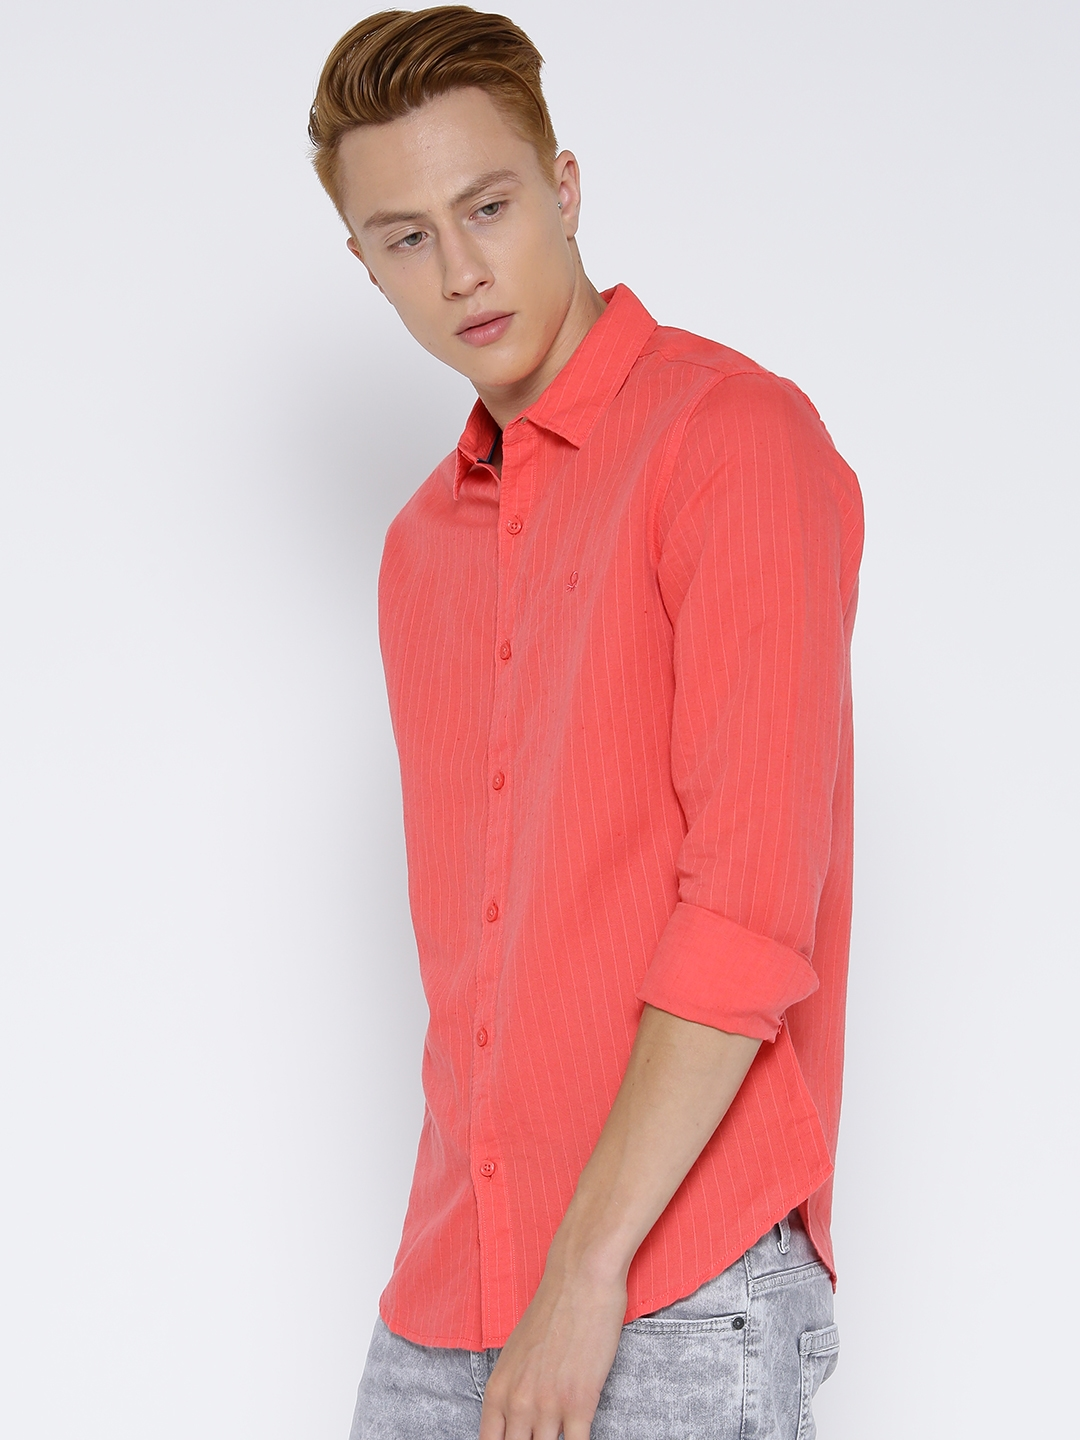 Buy United Colors Of Benetton Men Coral Orange Striped Casual Shirt